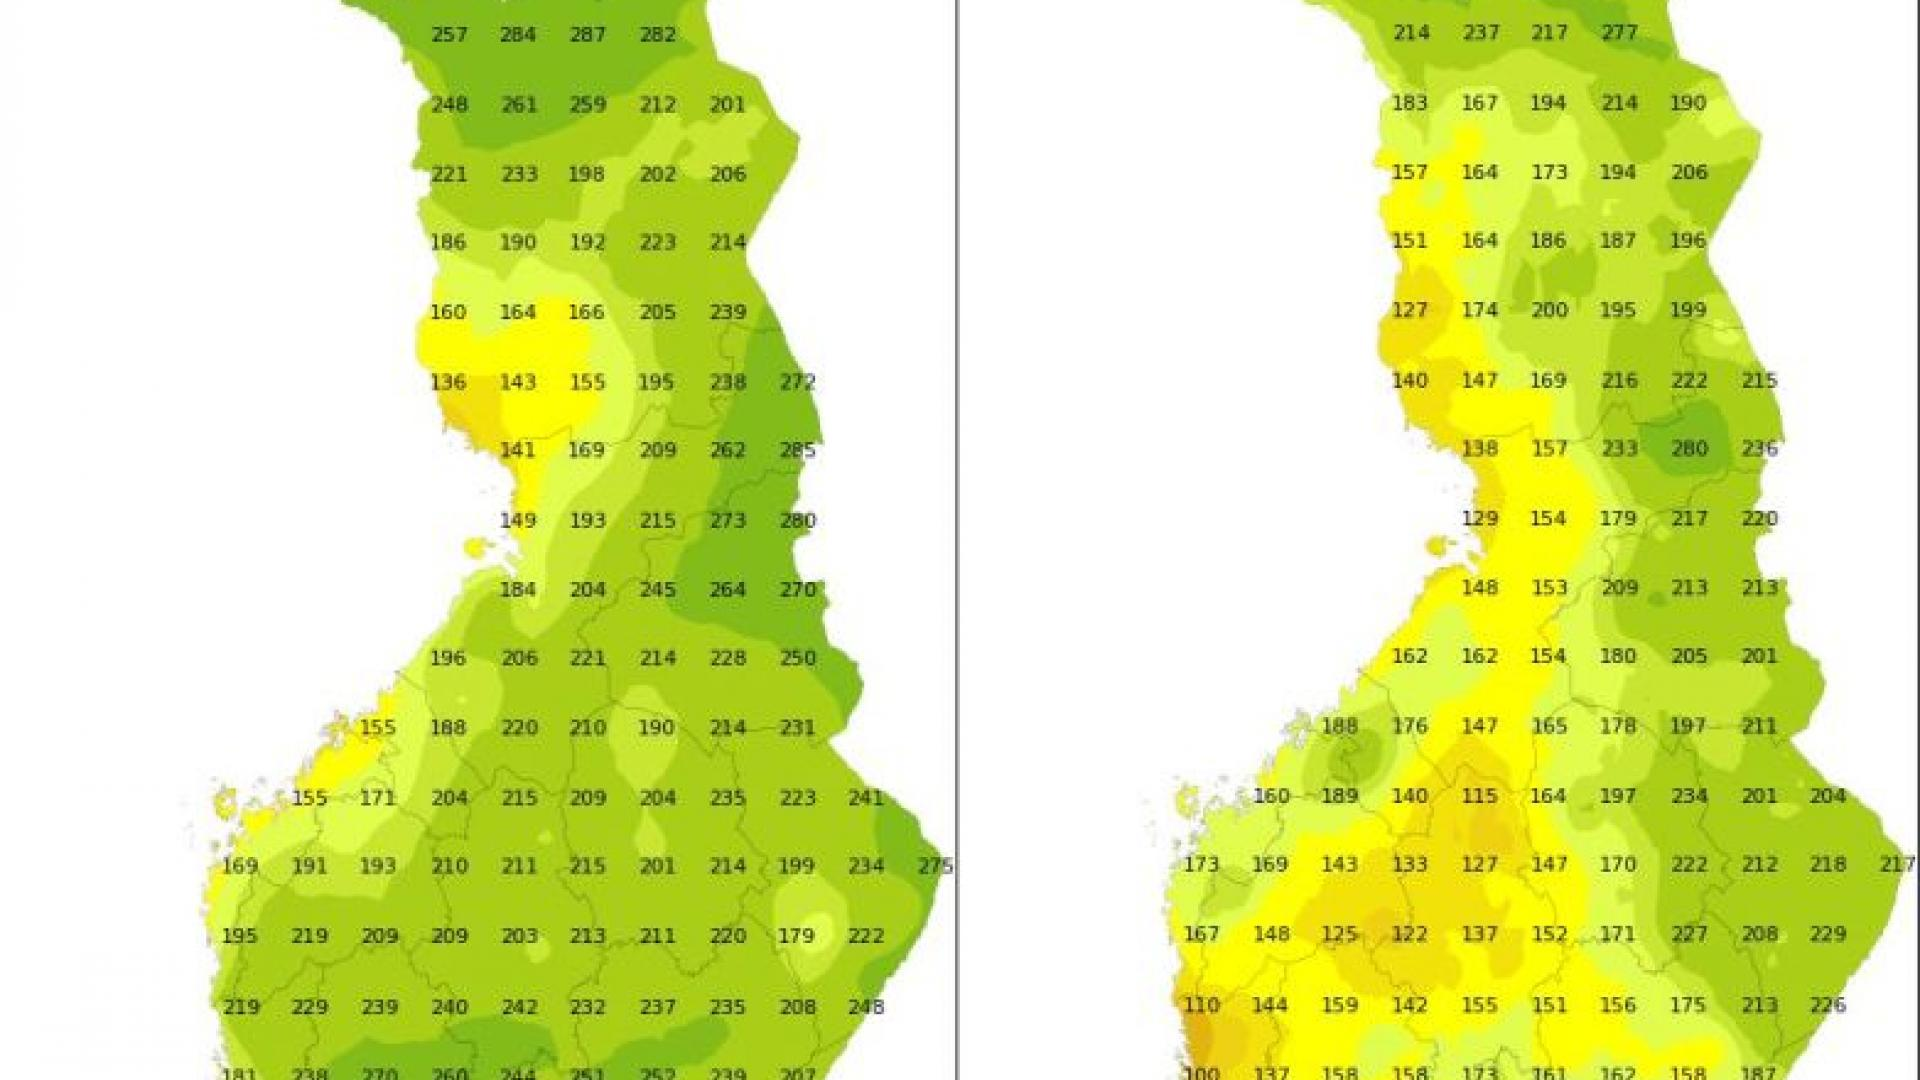 Using RGBs to look at the seasonal differences